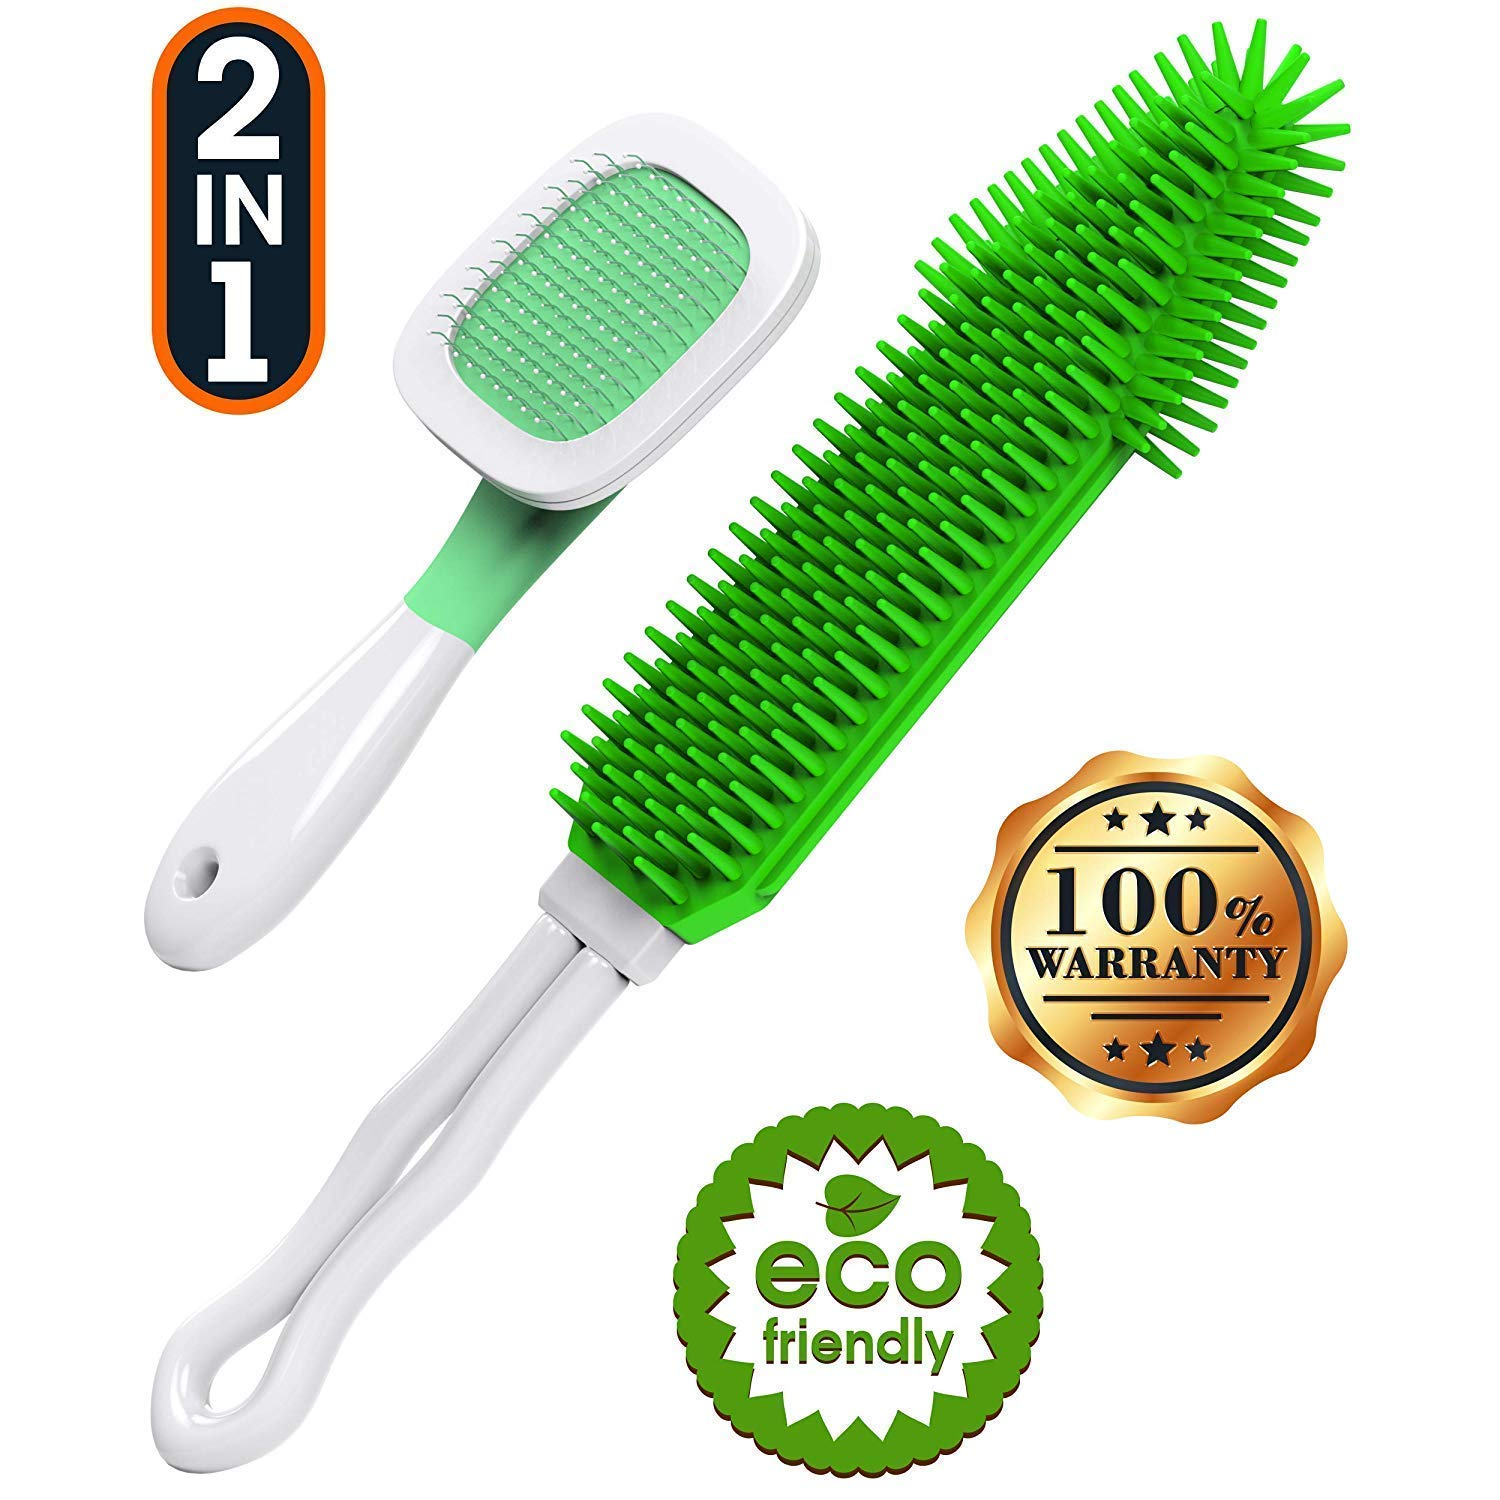 burkemany Pet Hair Remover - Grooming Brush -Dog and cat Carpet Hair Remover- Dog Hair Brush and cat Hair Remover